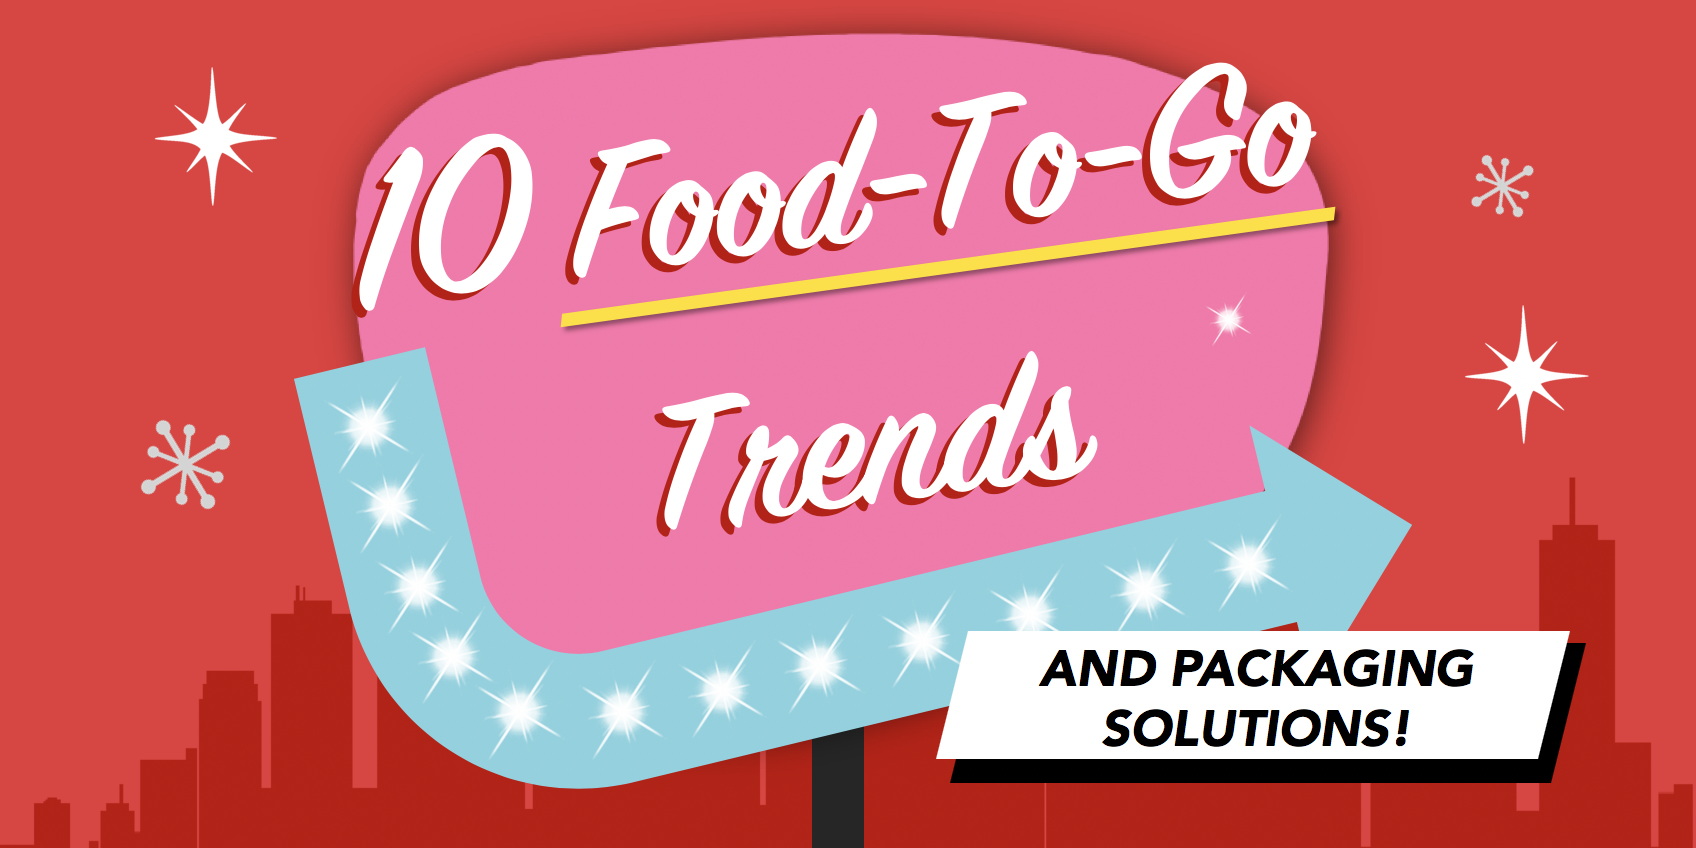 10 Food-to-Go Trends! - Priory Press Packaging